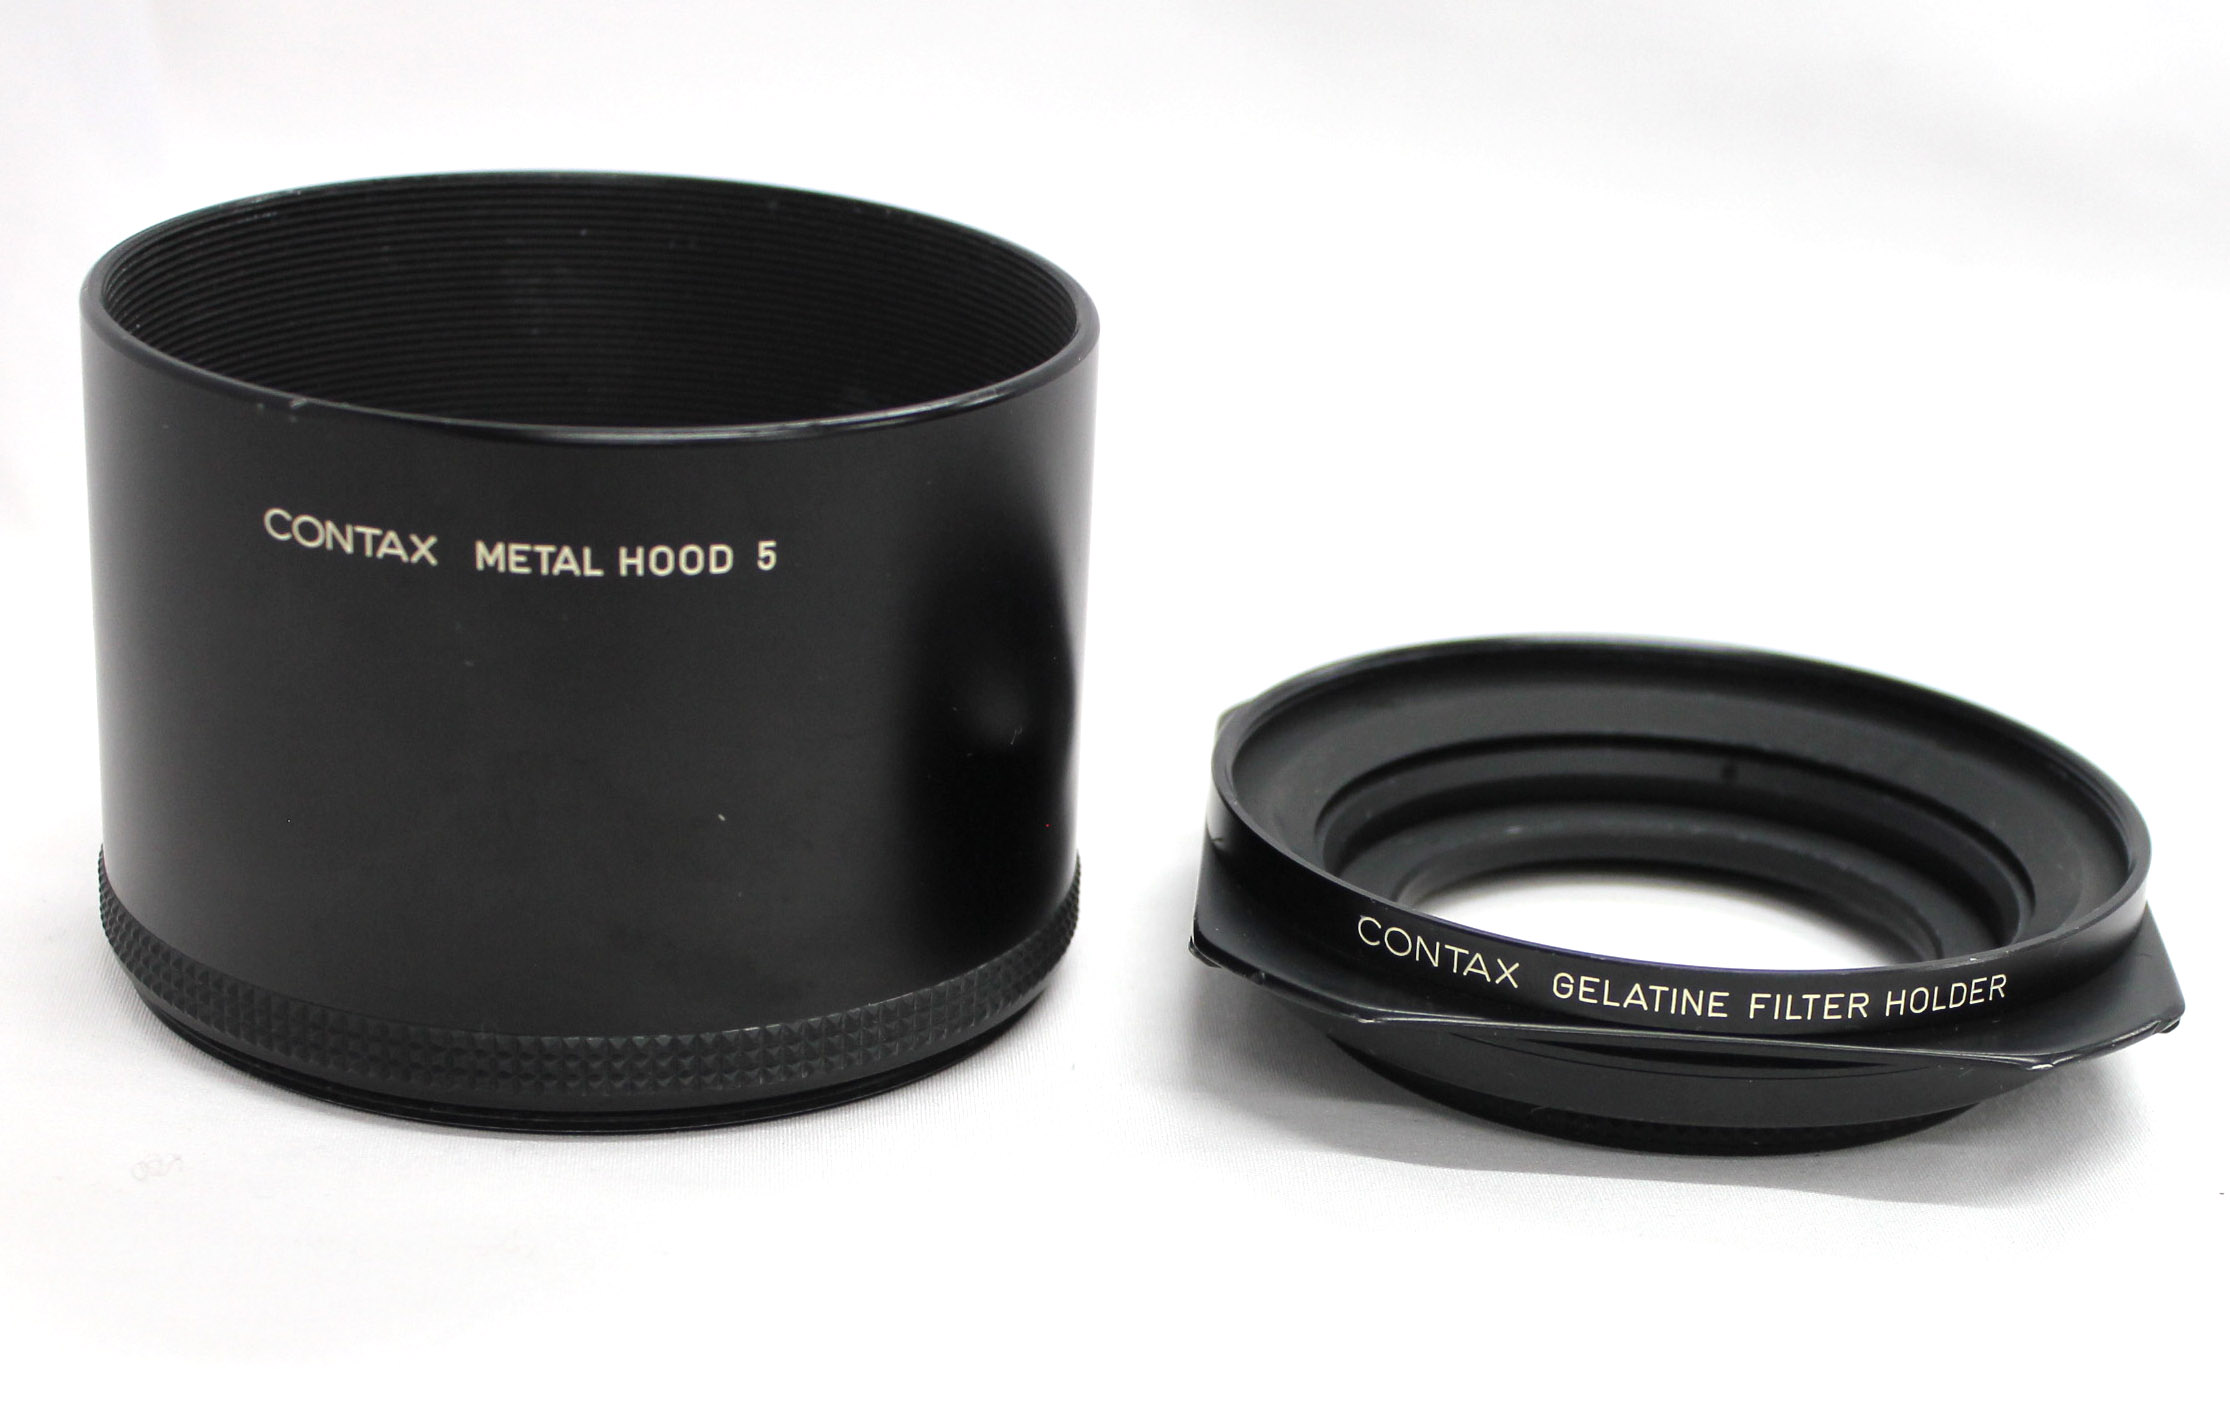 Japan Used Camera Shop | [Exc+++++] Contax Metal Hood 5 with Gelatine Filter Holder from Japan